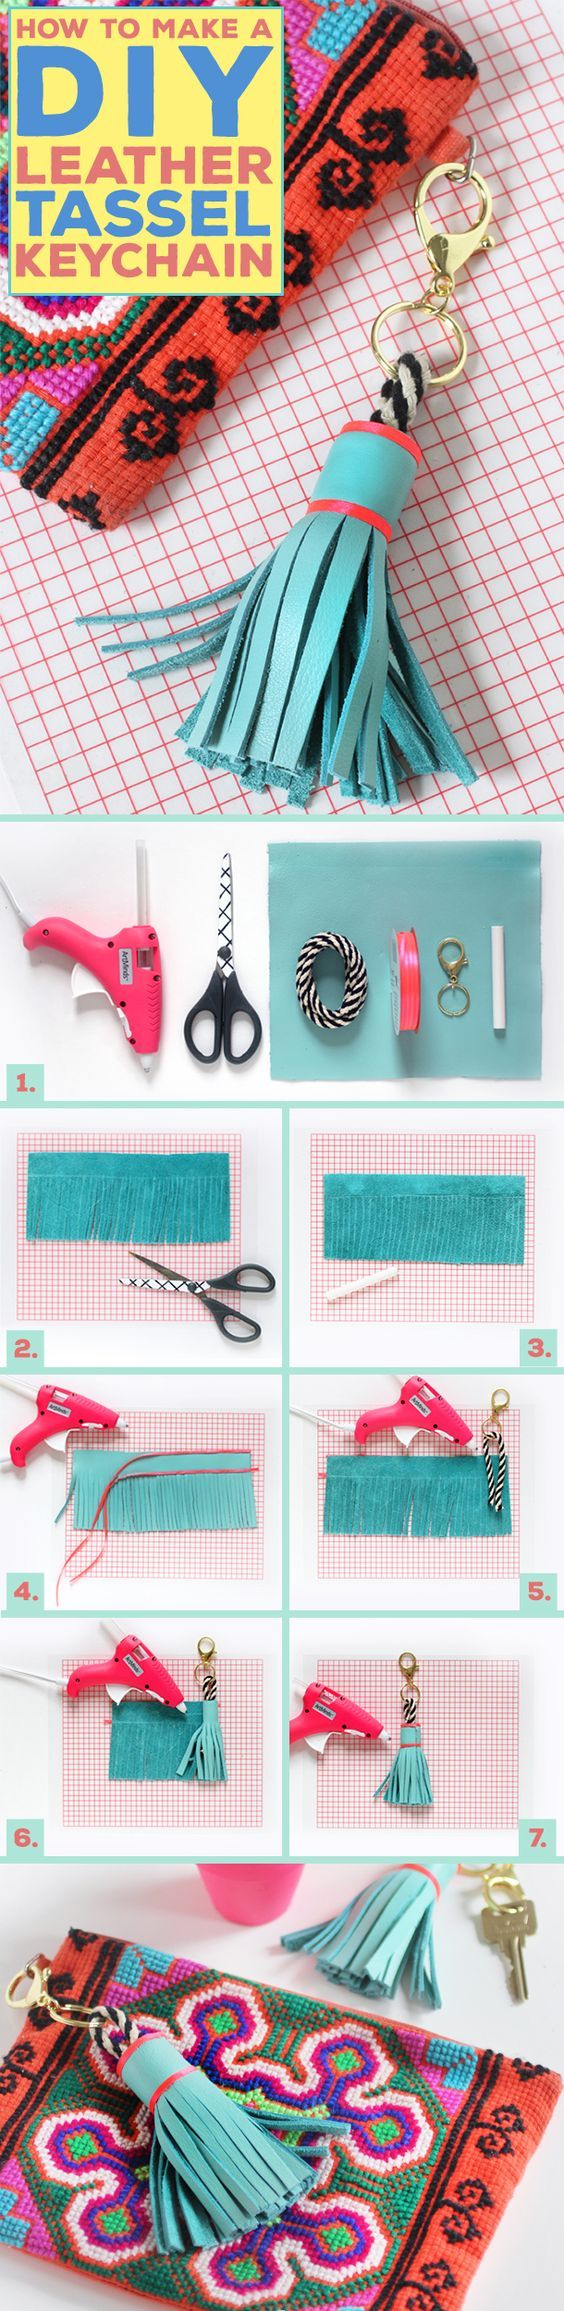 Grab a glue gun and upgrade an old key chain to a leather tassel that will make a cute accessory for a wallet. @ispydiy shares how to make this cute DIY accessory.